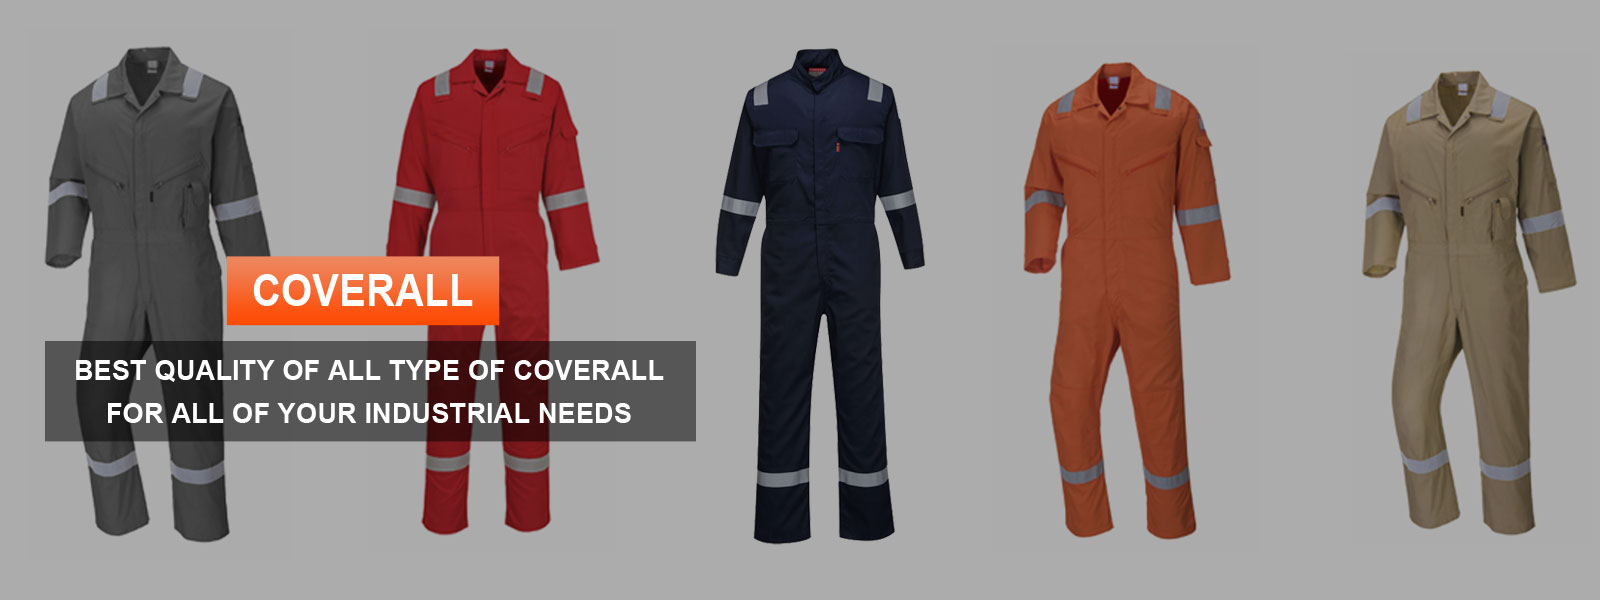 Coverall Manufacturers in Punjab